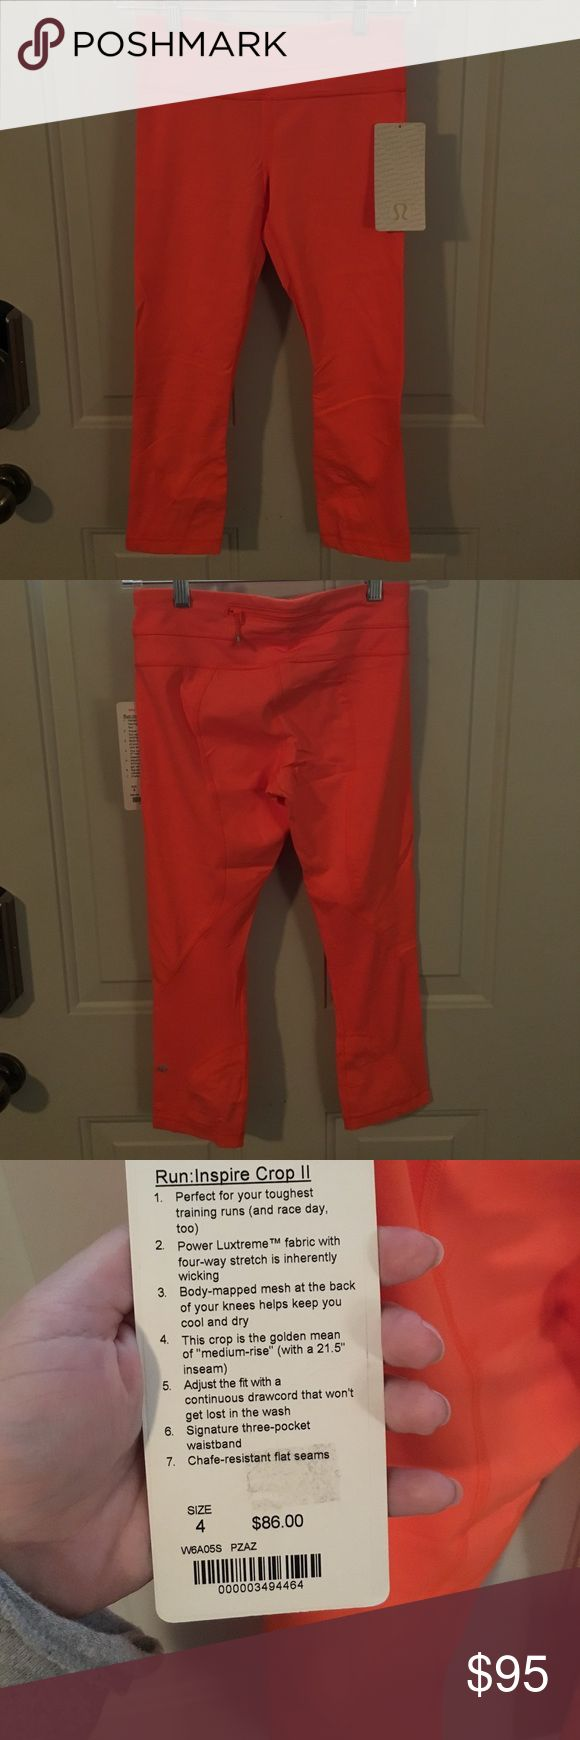 NWT Lululemon Run Inspire Crop II, 4 Brand new Run Inspires, no flaws. Size 4, color is orange pizzazz. Discontinued model but still a solid staple. 🚫No Trades, I have too many! 🔵Please use offer button. 🛍 bundle and save. Feel free to ask any questions!  Only stock photo I could find, fun color! lululemon athletica Pants Leggings